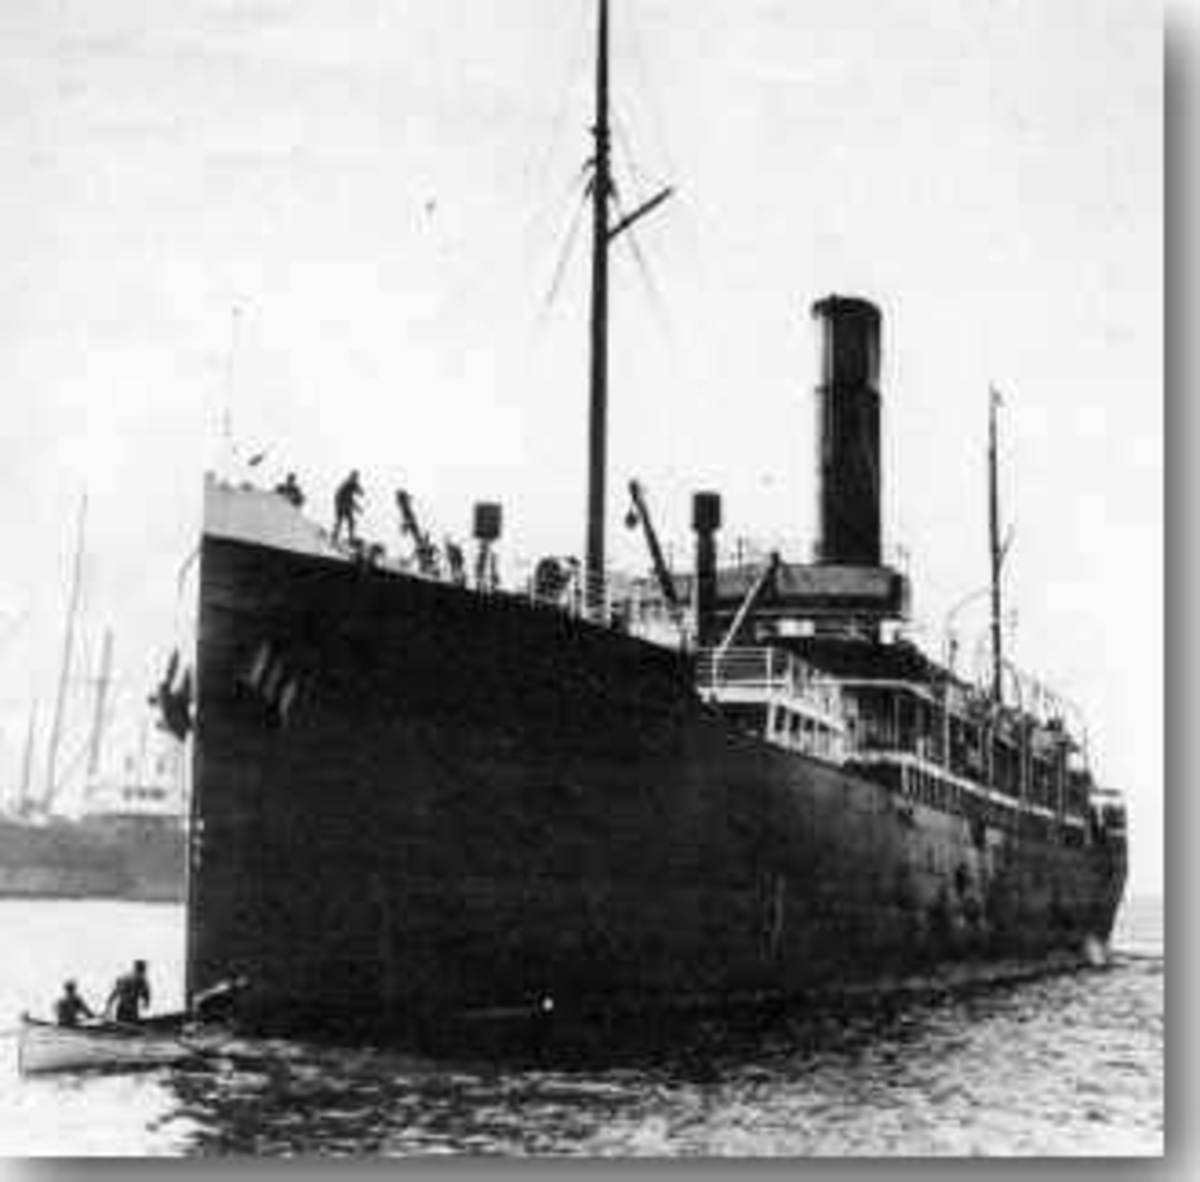 The S.S Yongala before she sunk.